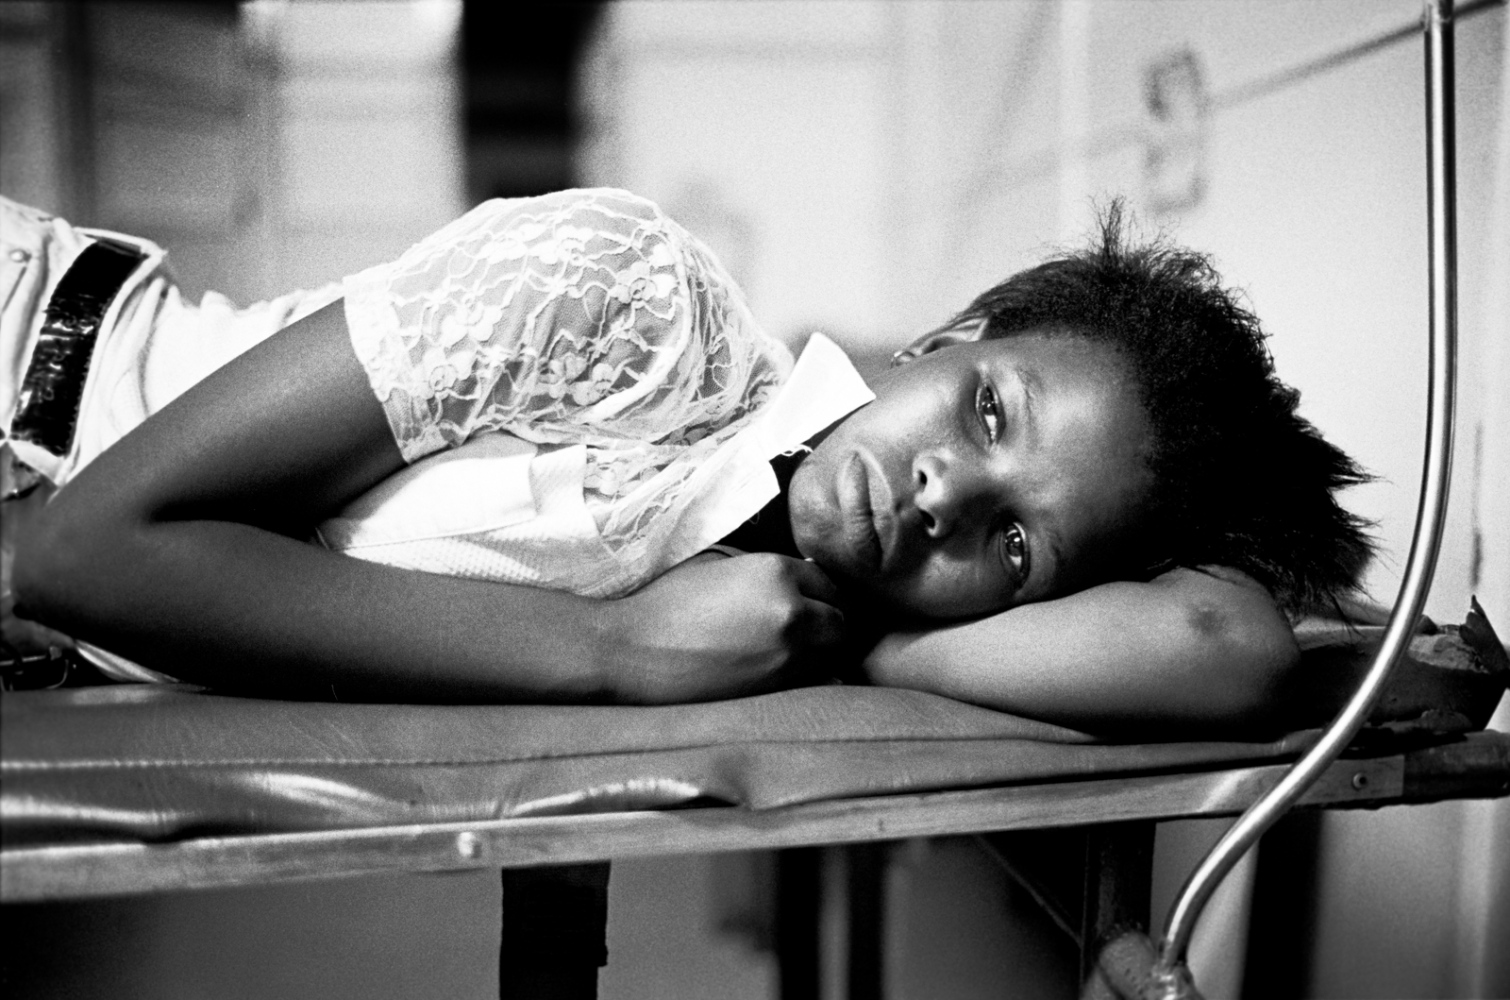 A young girl rests at a hospital, after being rescued from a suicide attempt prompted by her rape. 1998